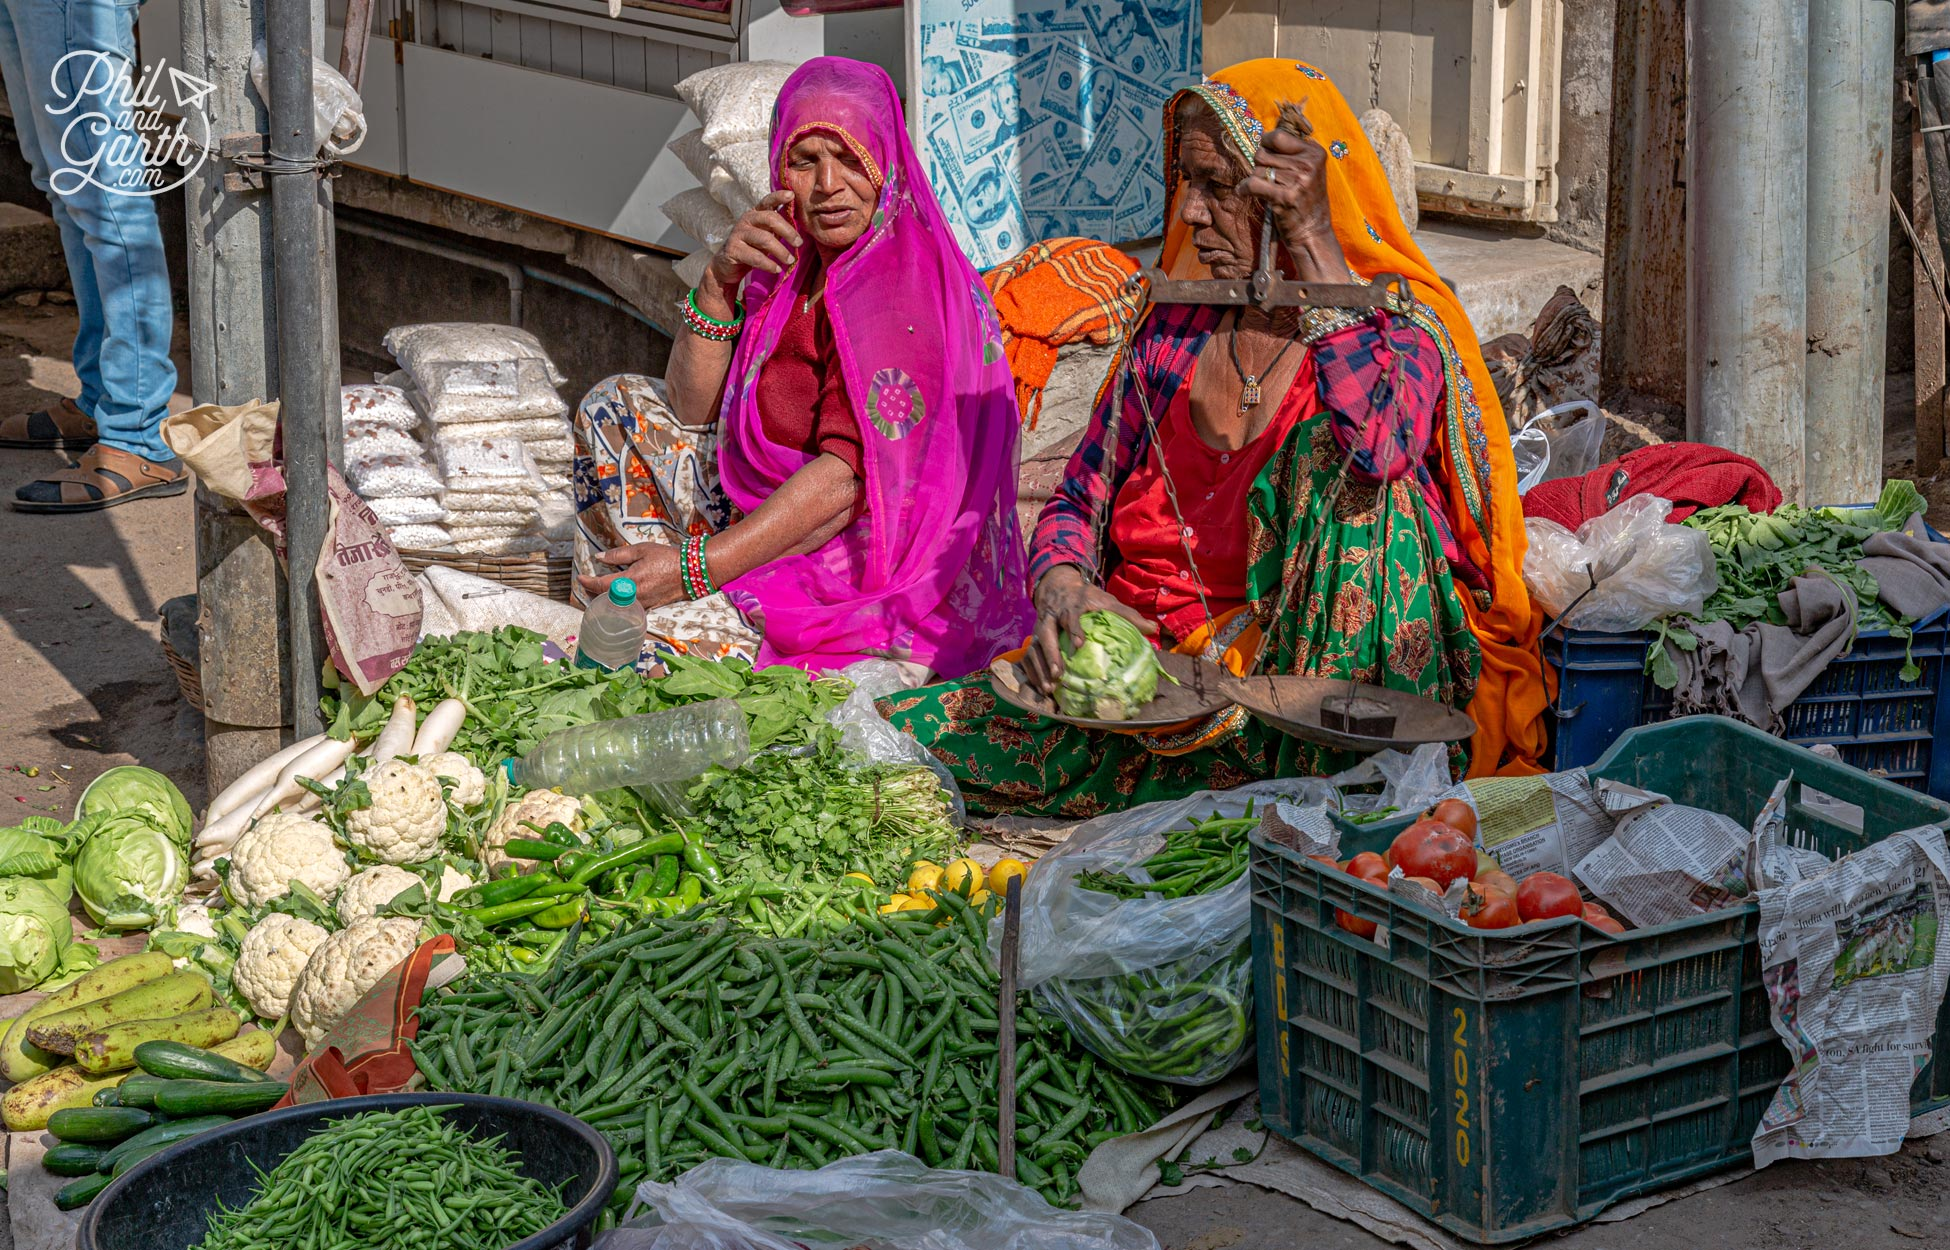 A couple more ladies selling vegetables on a street corner